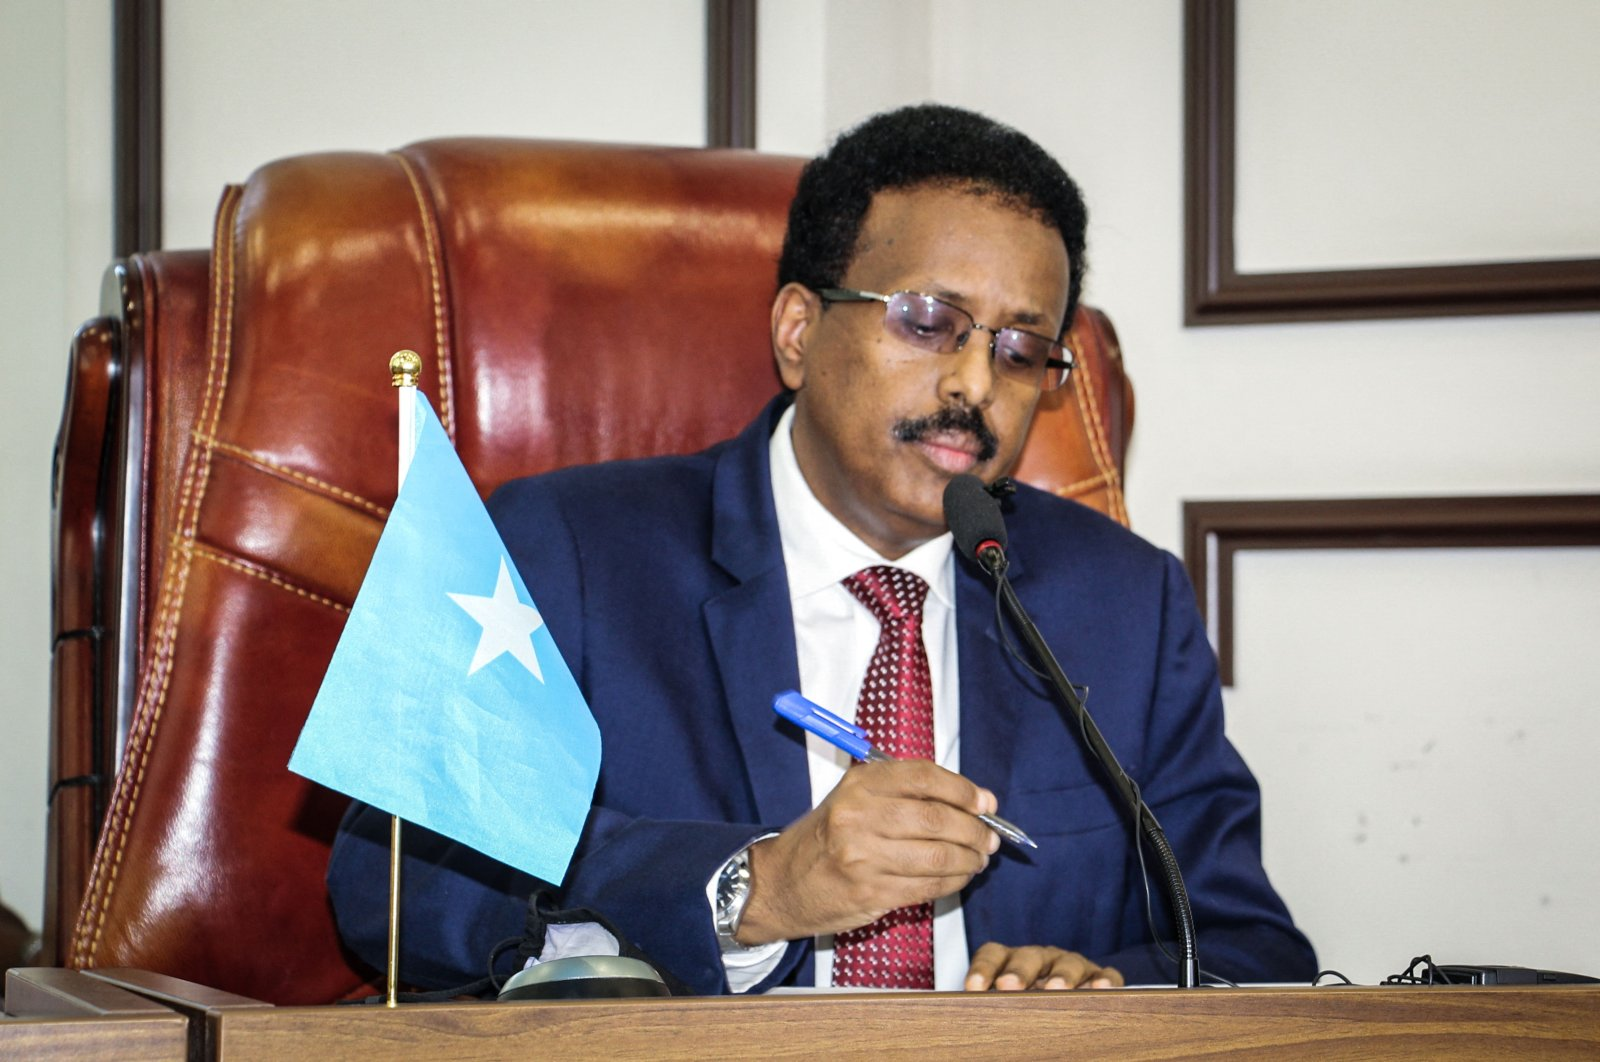 Somalia's President Mohamed Abdullahi Mohamed, commonly known by his nickname of Farmajo, attends a special assembly to discuss abandoning the two-year extension of his presidential term and to request an immediate election to ease recent political tensions, at Villa Hargeisa in Mogadishu, Somalia, May 1, 2021. (AFP Photo)